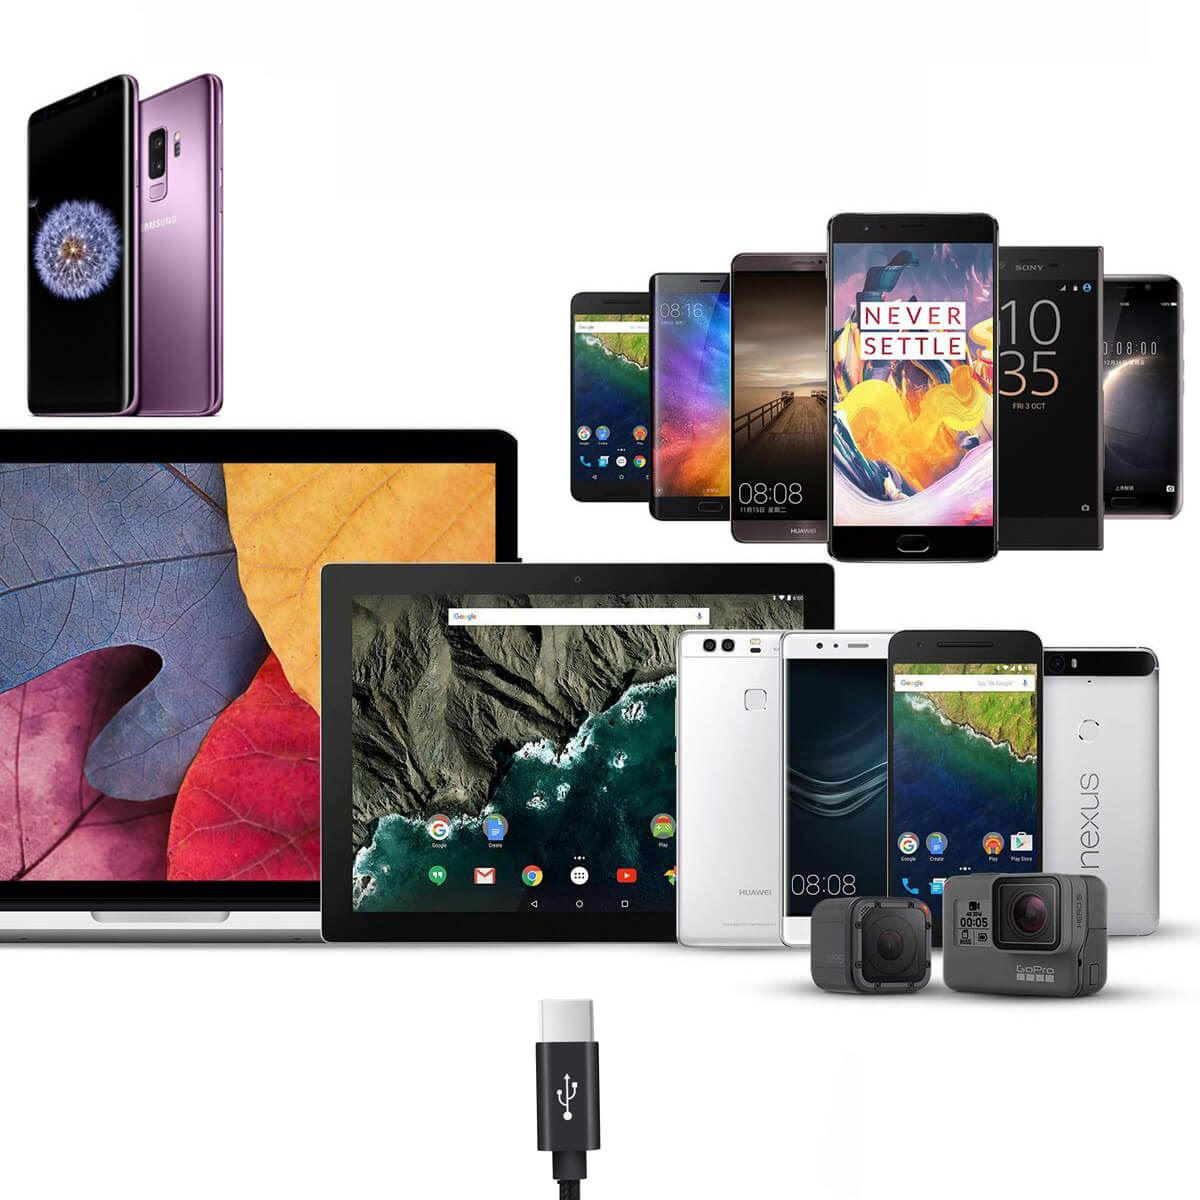 Type-C-USB-C-Sync-Fast-Charger-Charging-Cable-Samsung-Galaxy-S10-S9-S8-Plus-Lite thumbnail 16